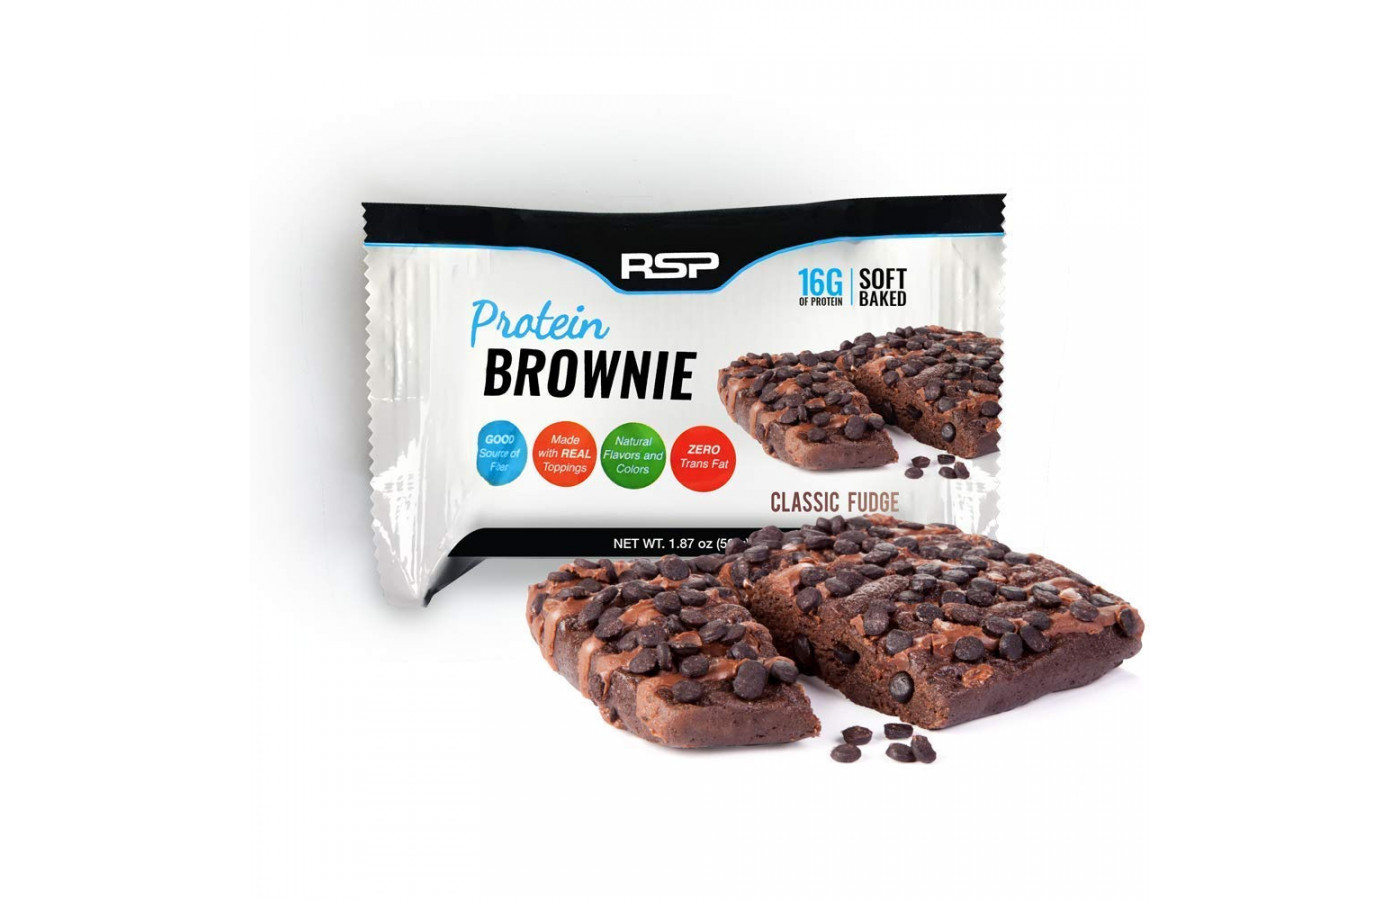 RSP Protein Brownie